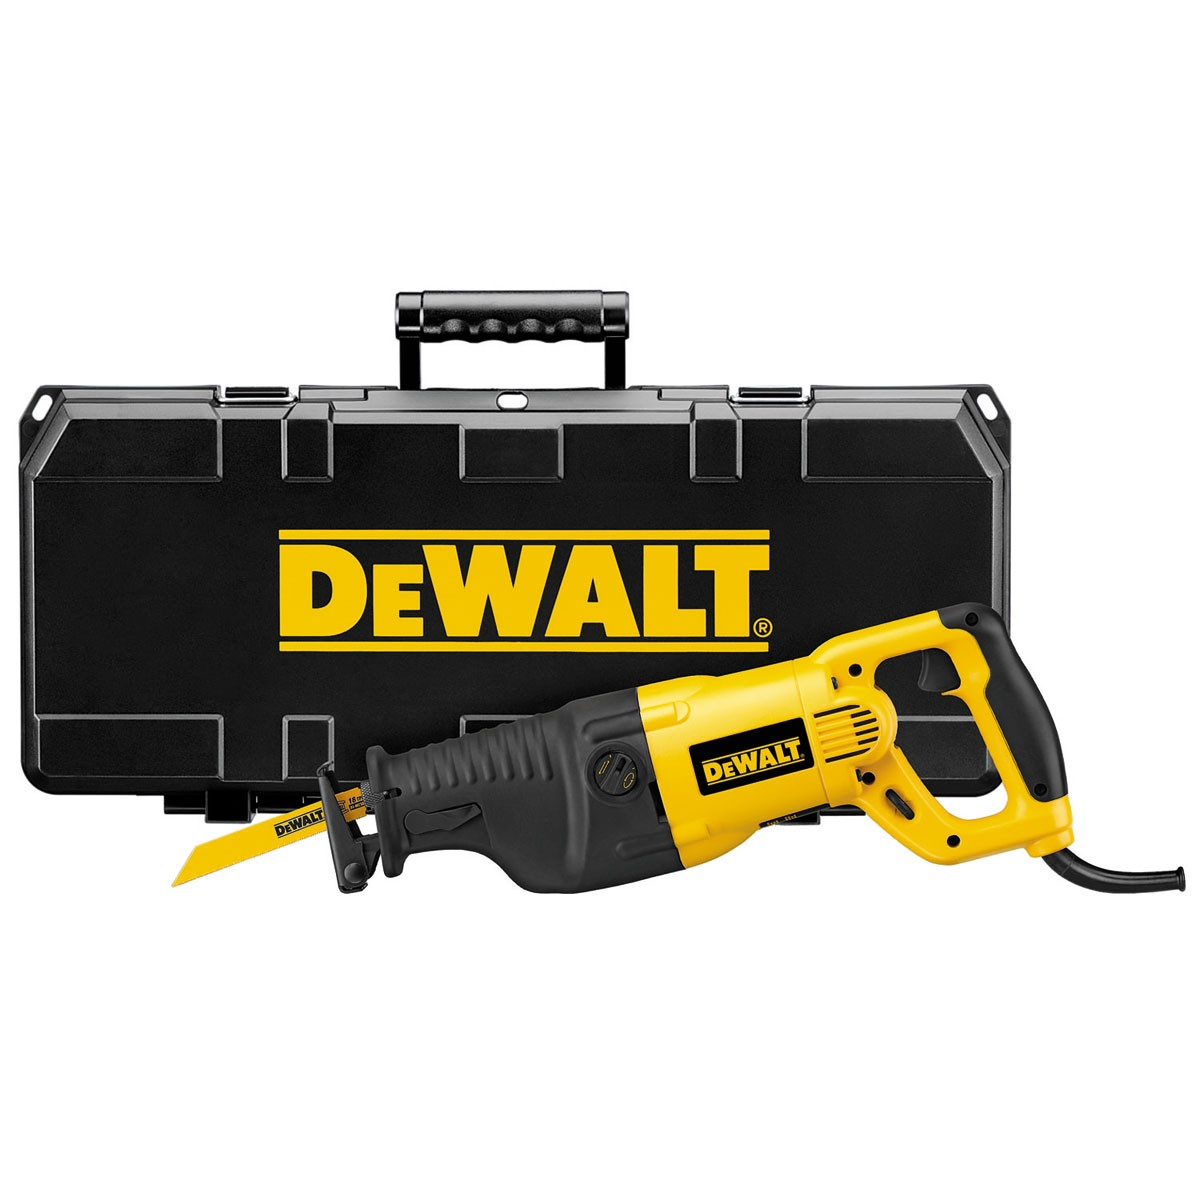 DeWalt DW311K Heavy Duty Reciprocating Saw 110v